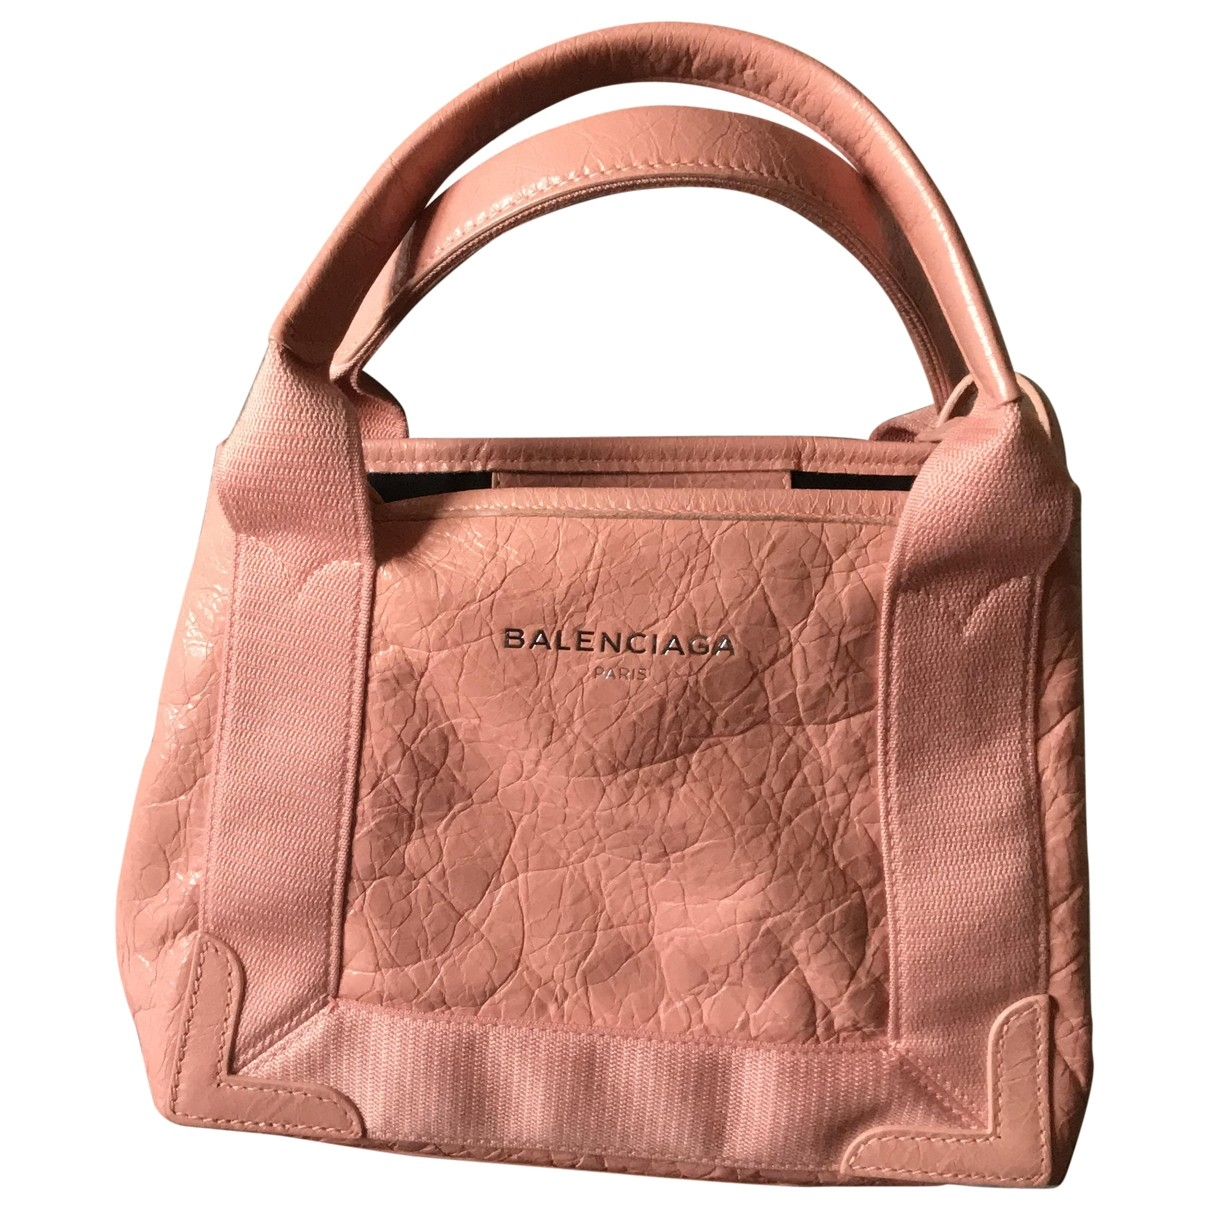 Balenciaga Navy cabas Pink Leather handbag for Women \N